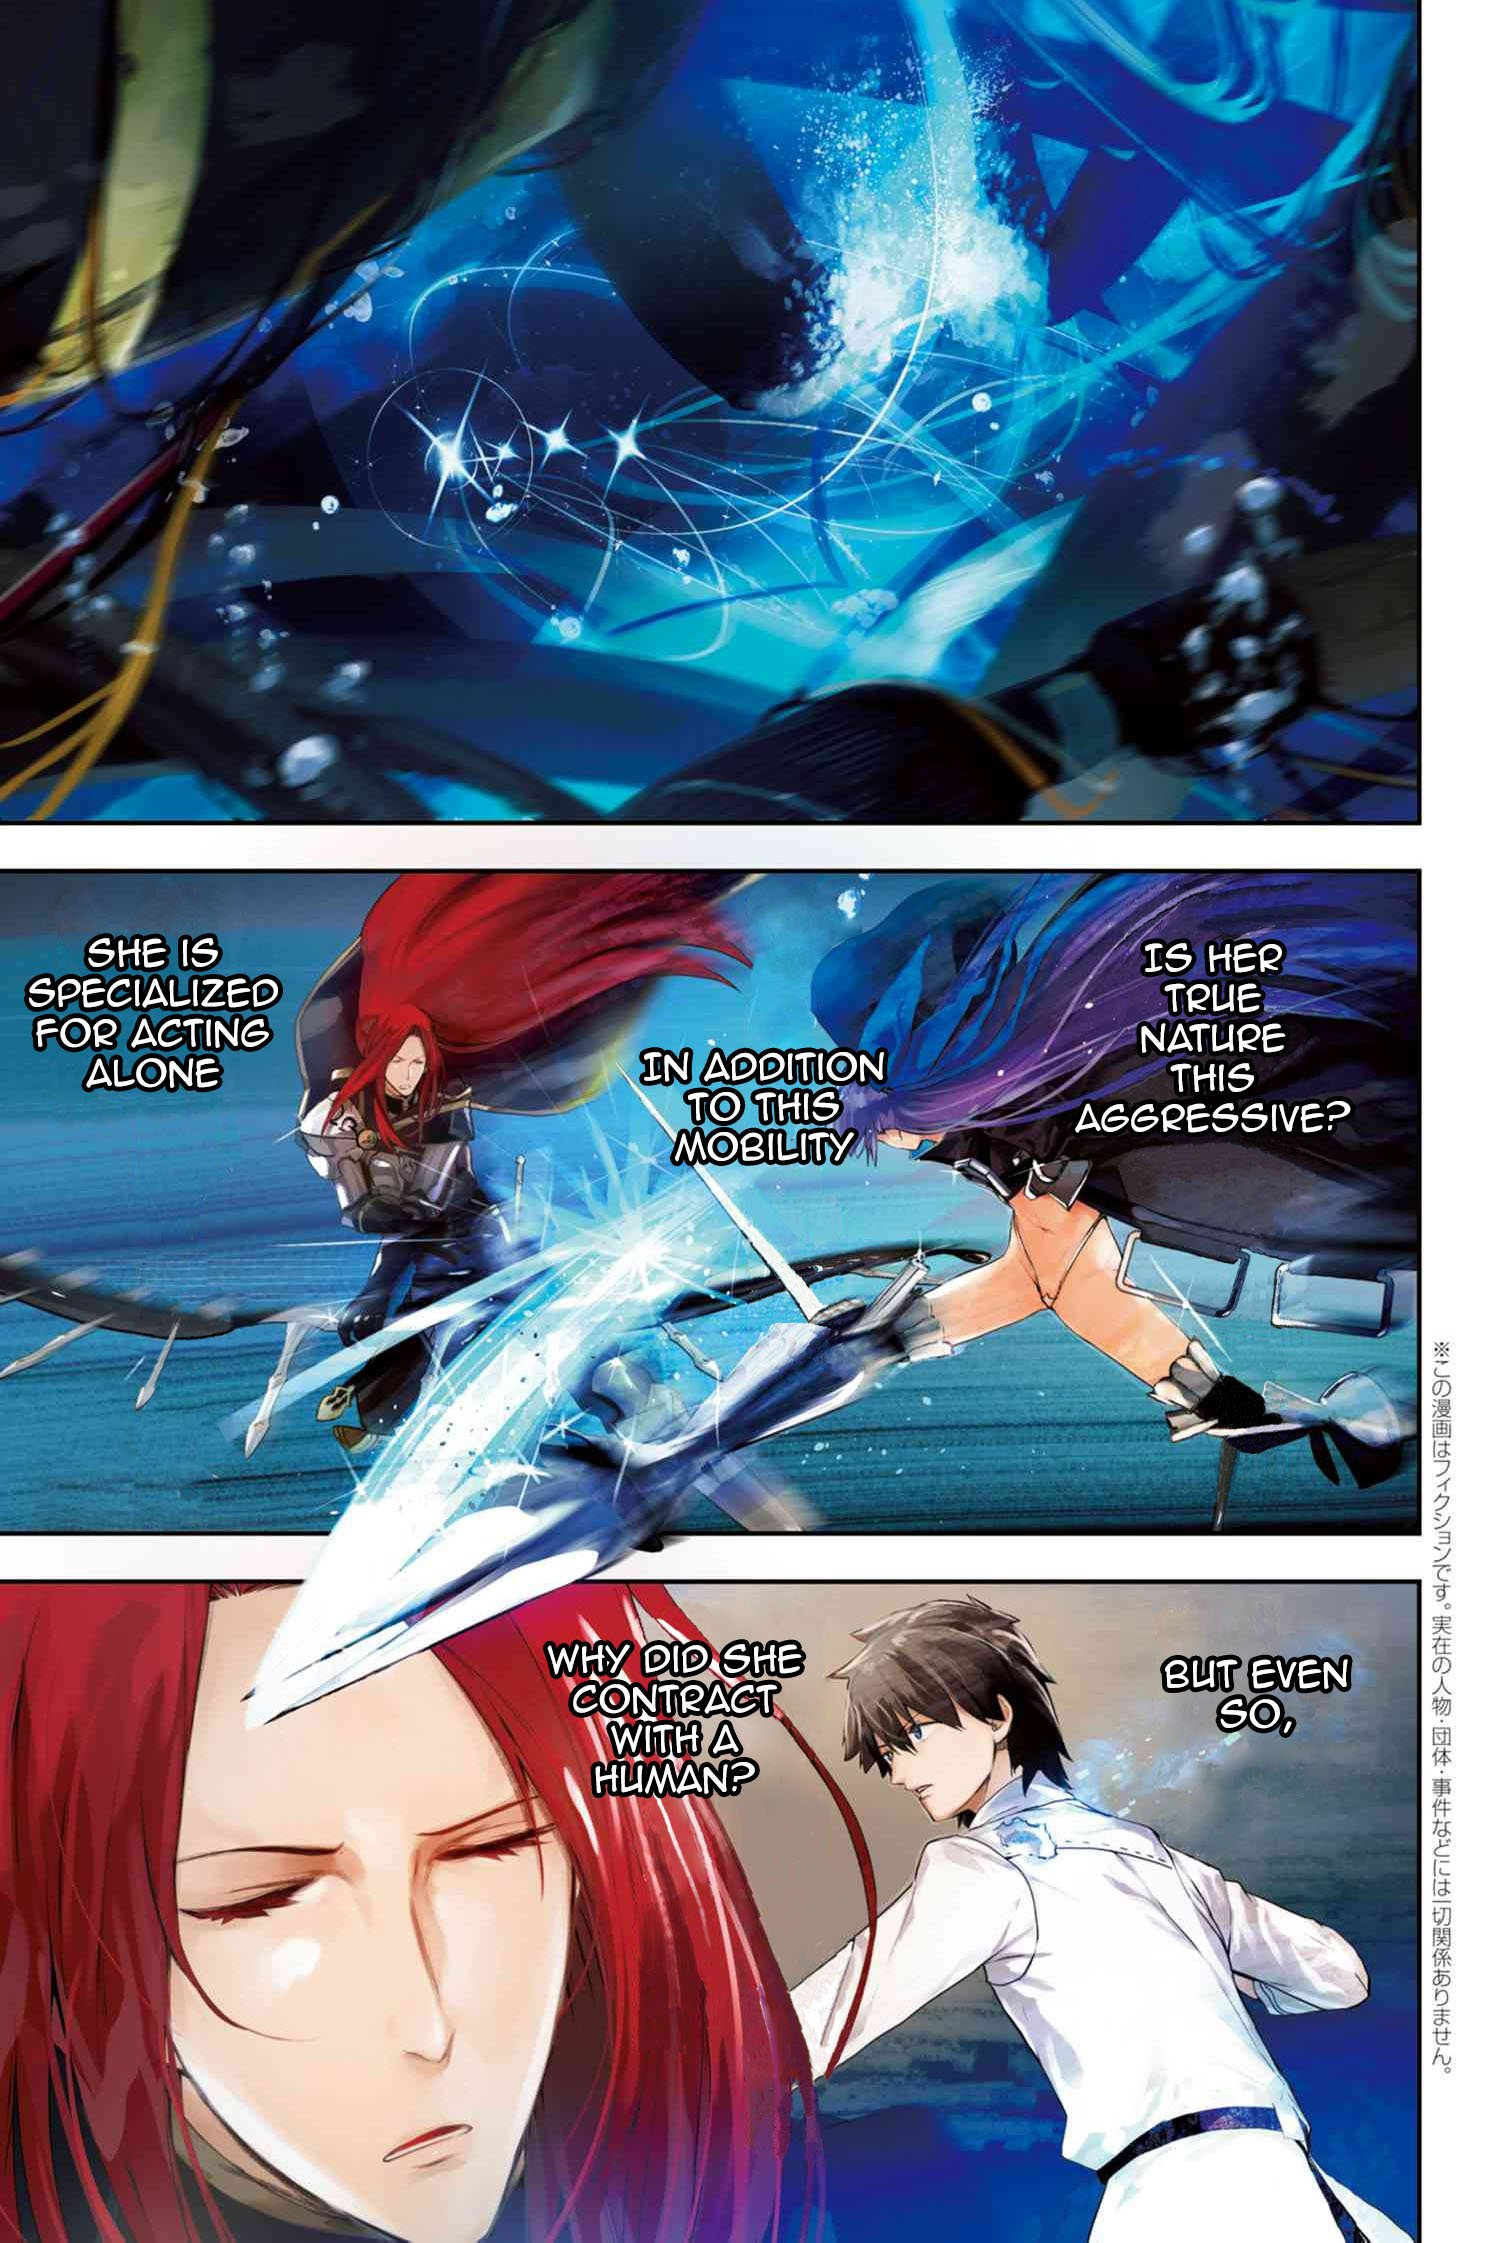 Fate/Grand Order -Epic of Remnant- Deep Sea Cyber-Paradise SE.RA.PH - chapter 6.1 - #1